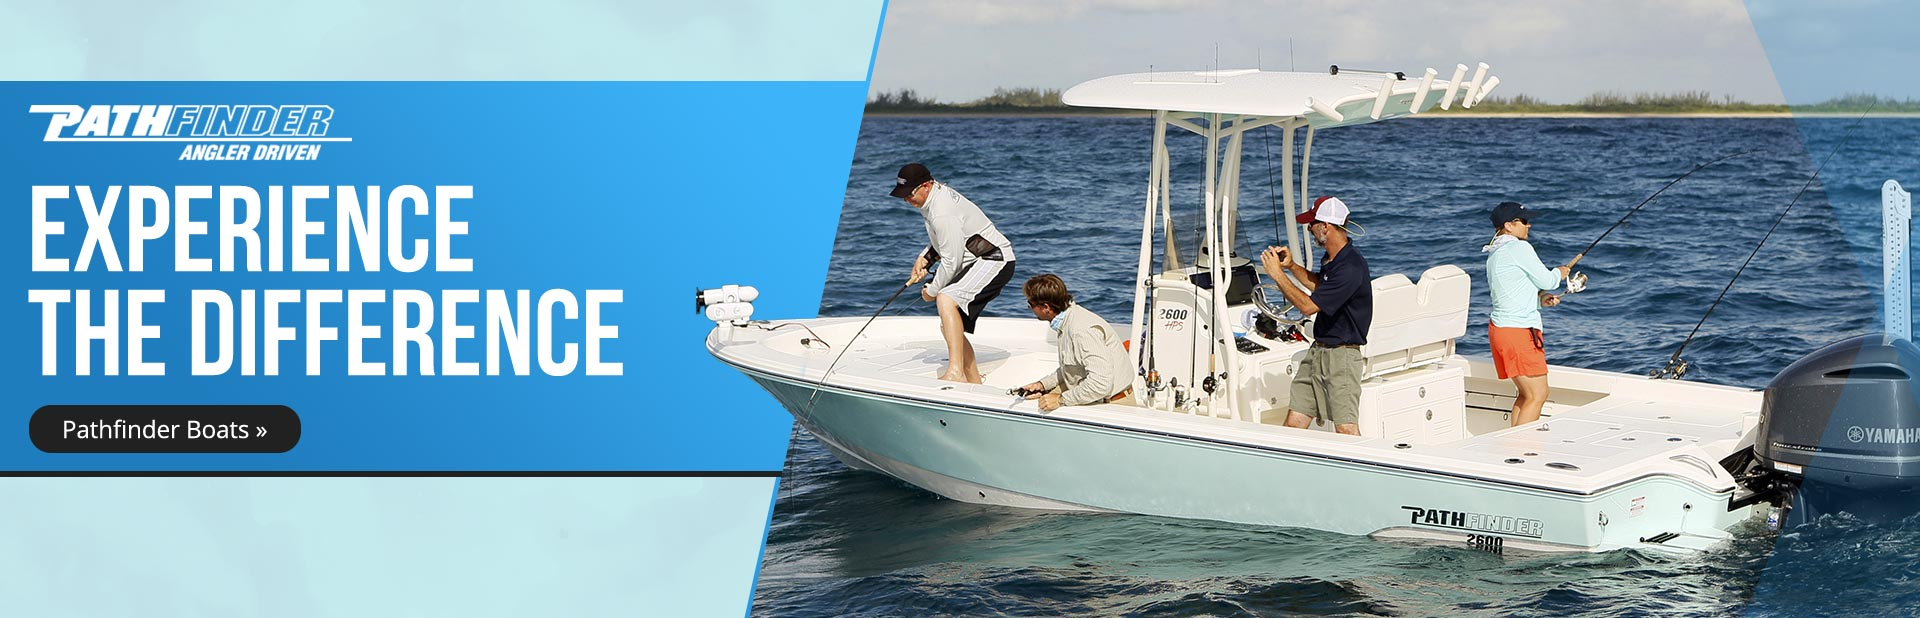 Pathfinder Boats: Experience the Difference